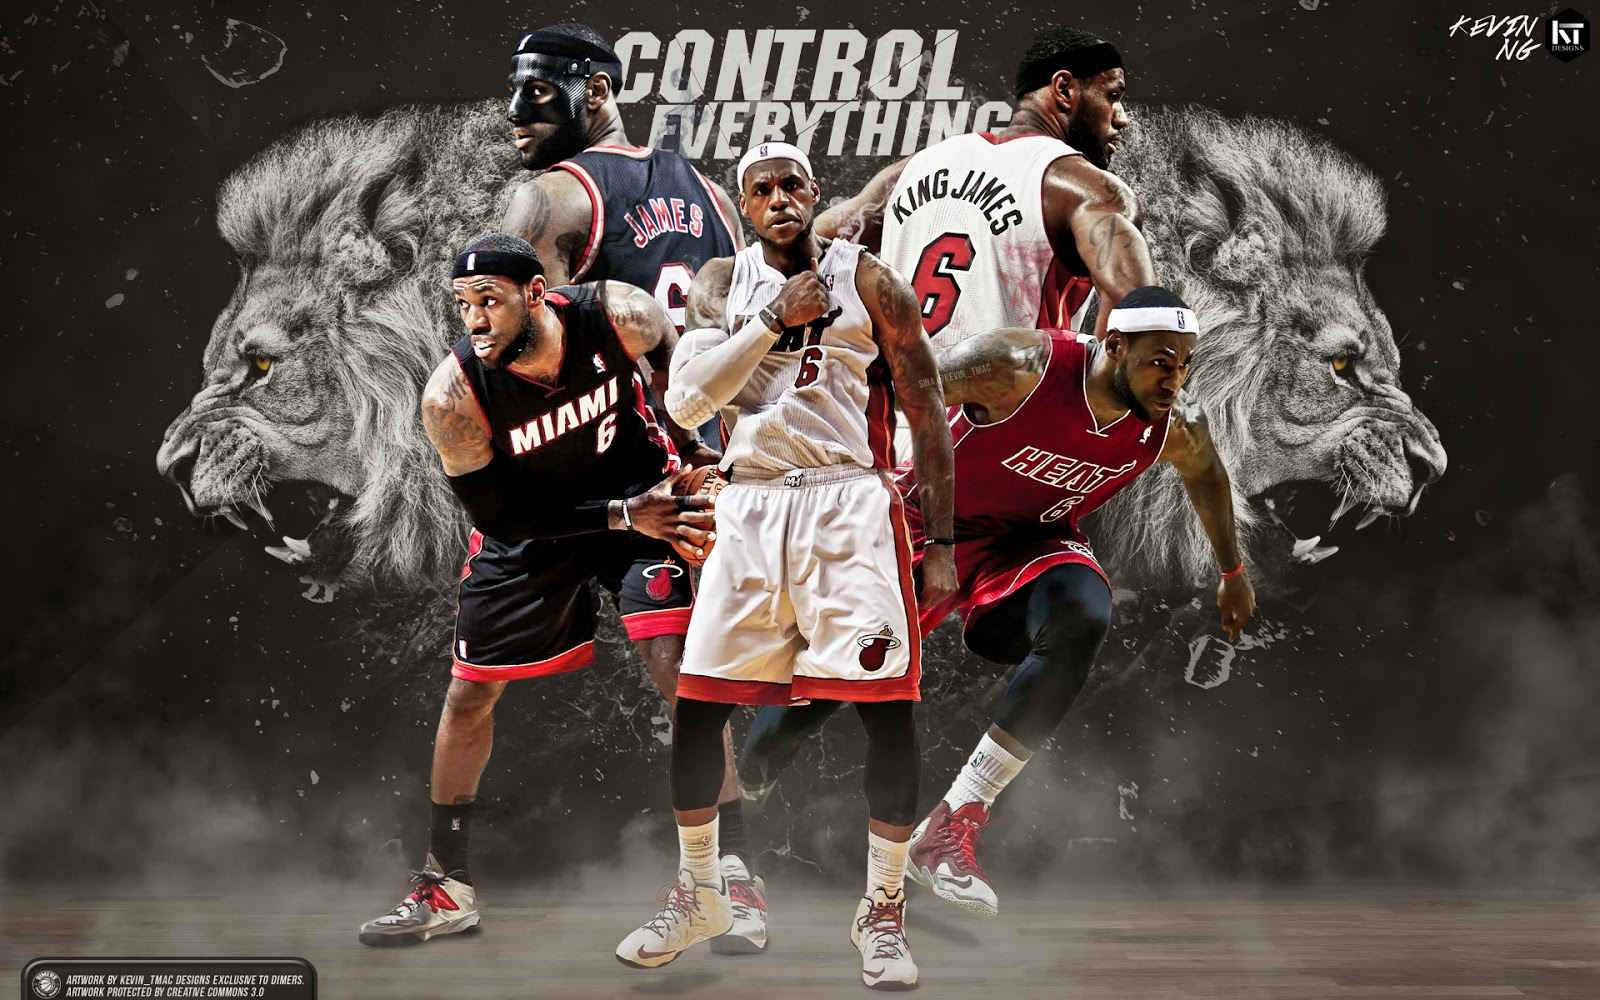 Simple Wallpaper Mac Lebron James - lebron_james__control_everything__wallpaper_by_kevin_tmac-d7i700l  Image_18762.jpg